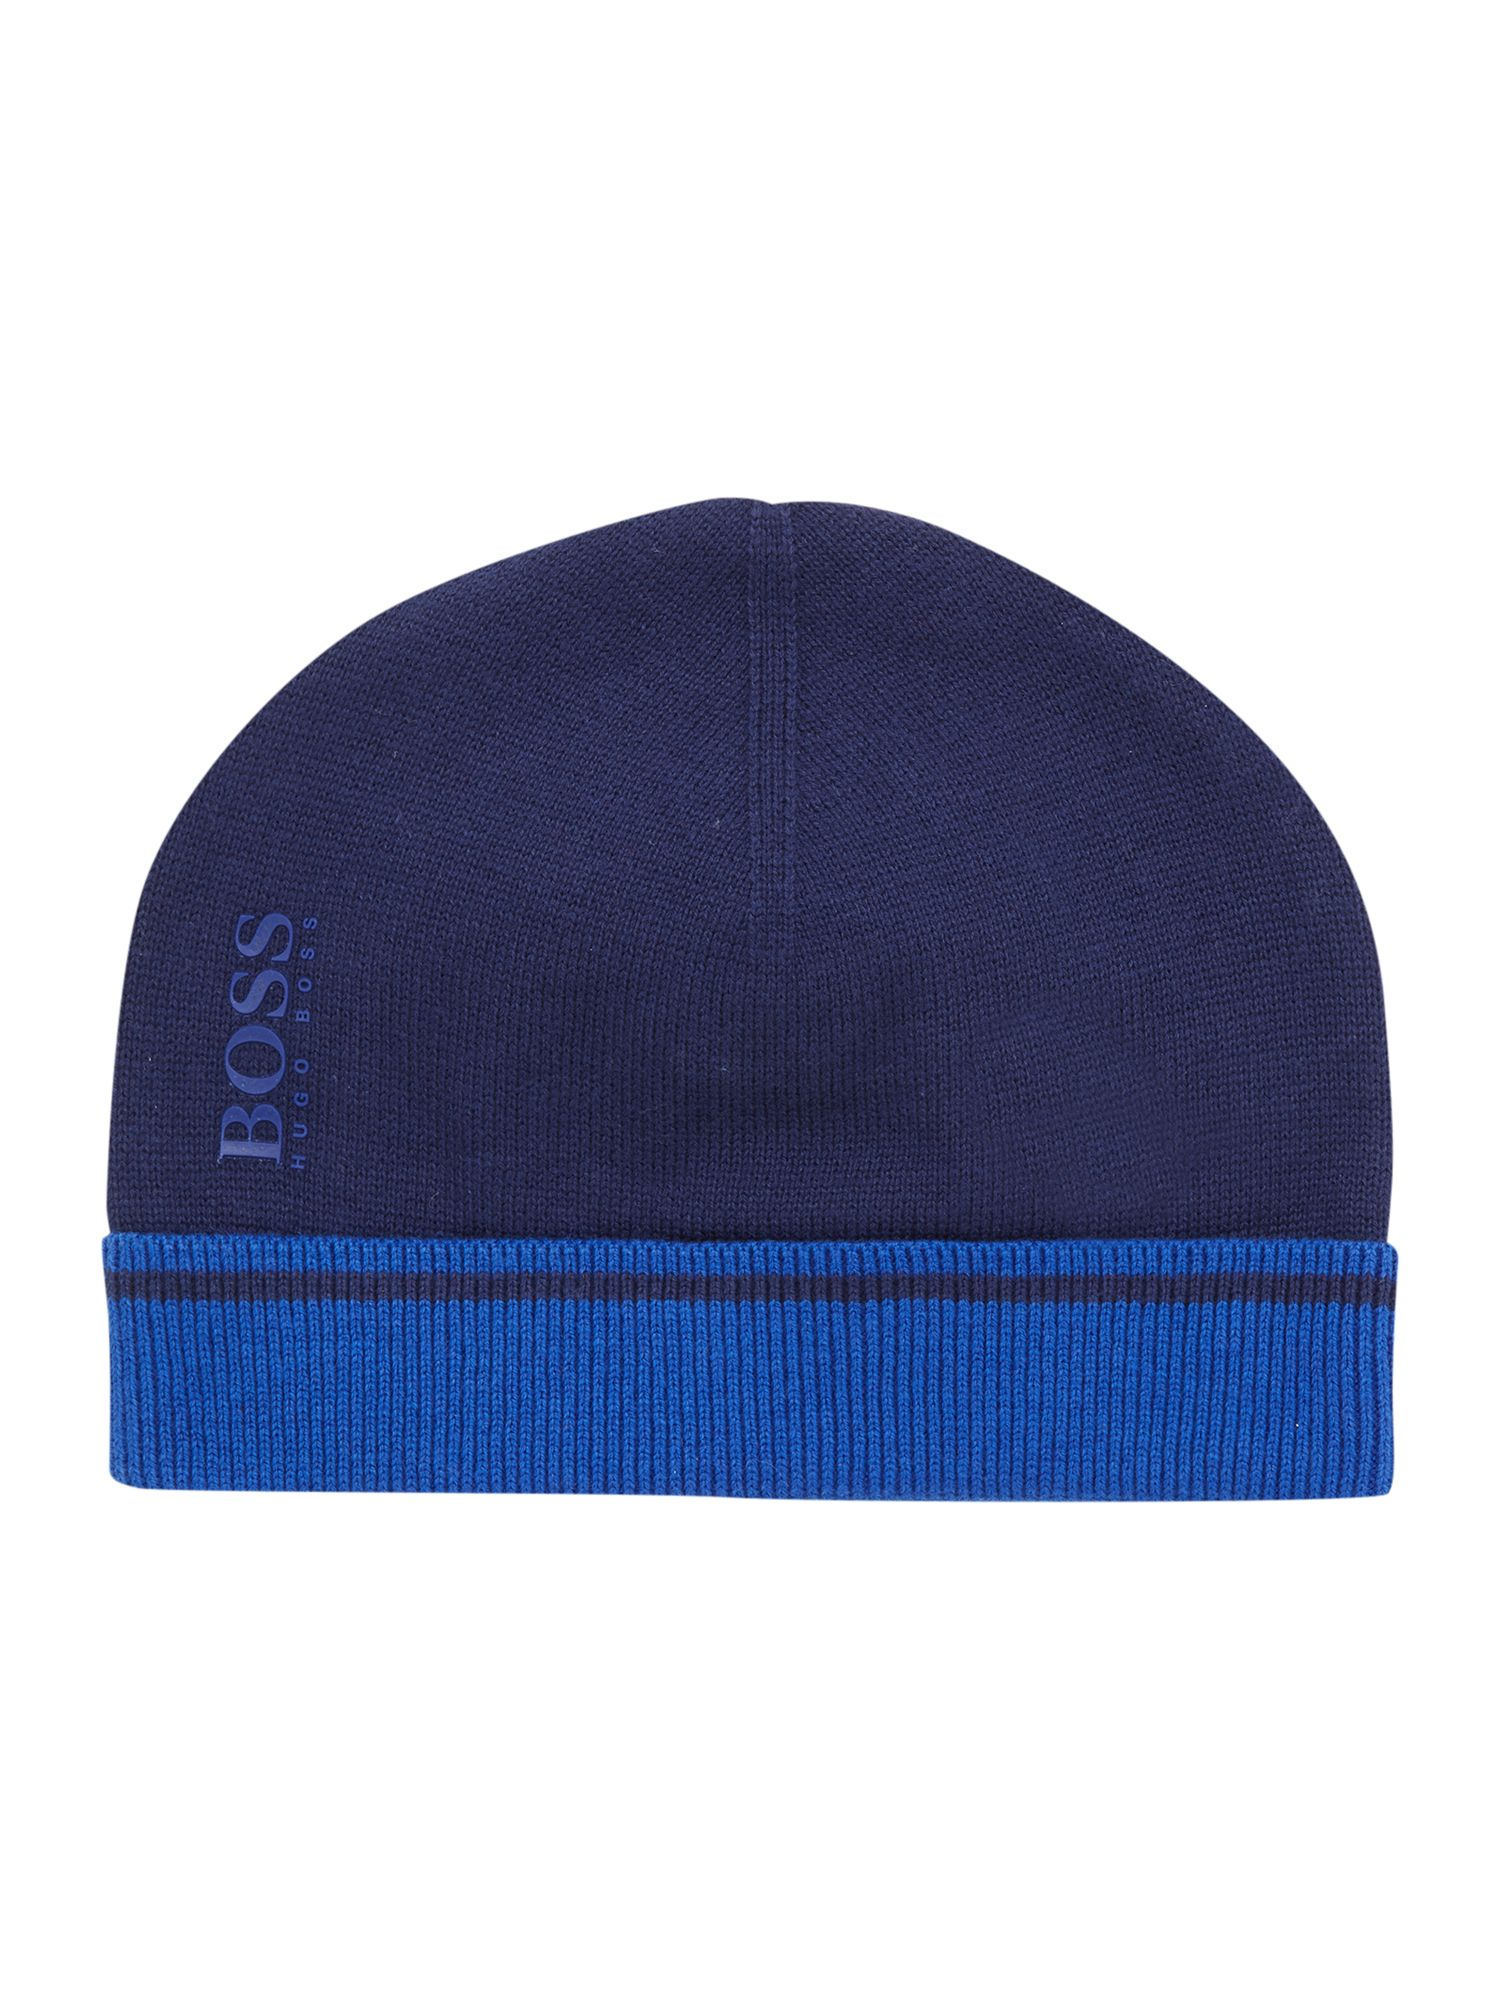 Boys wool knitted hat